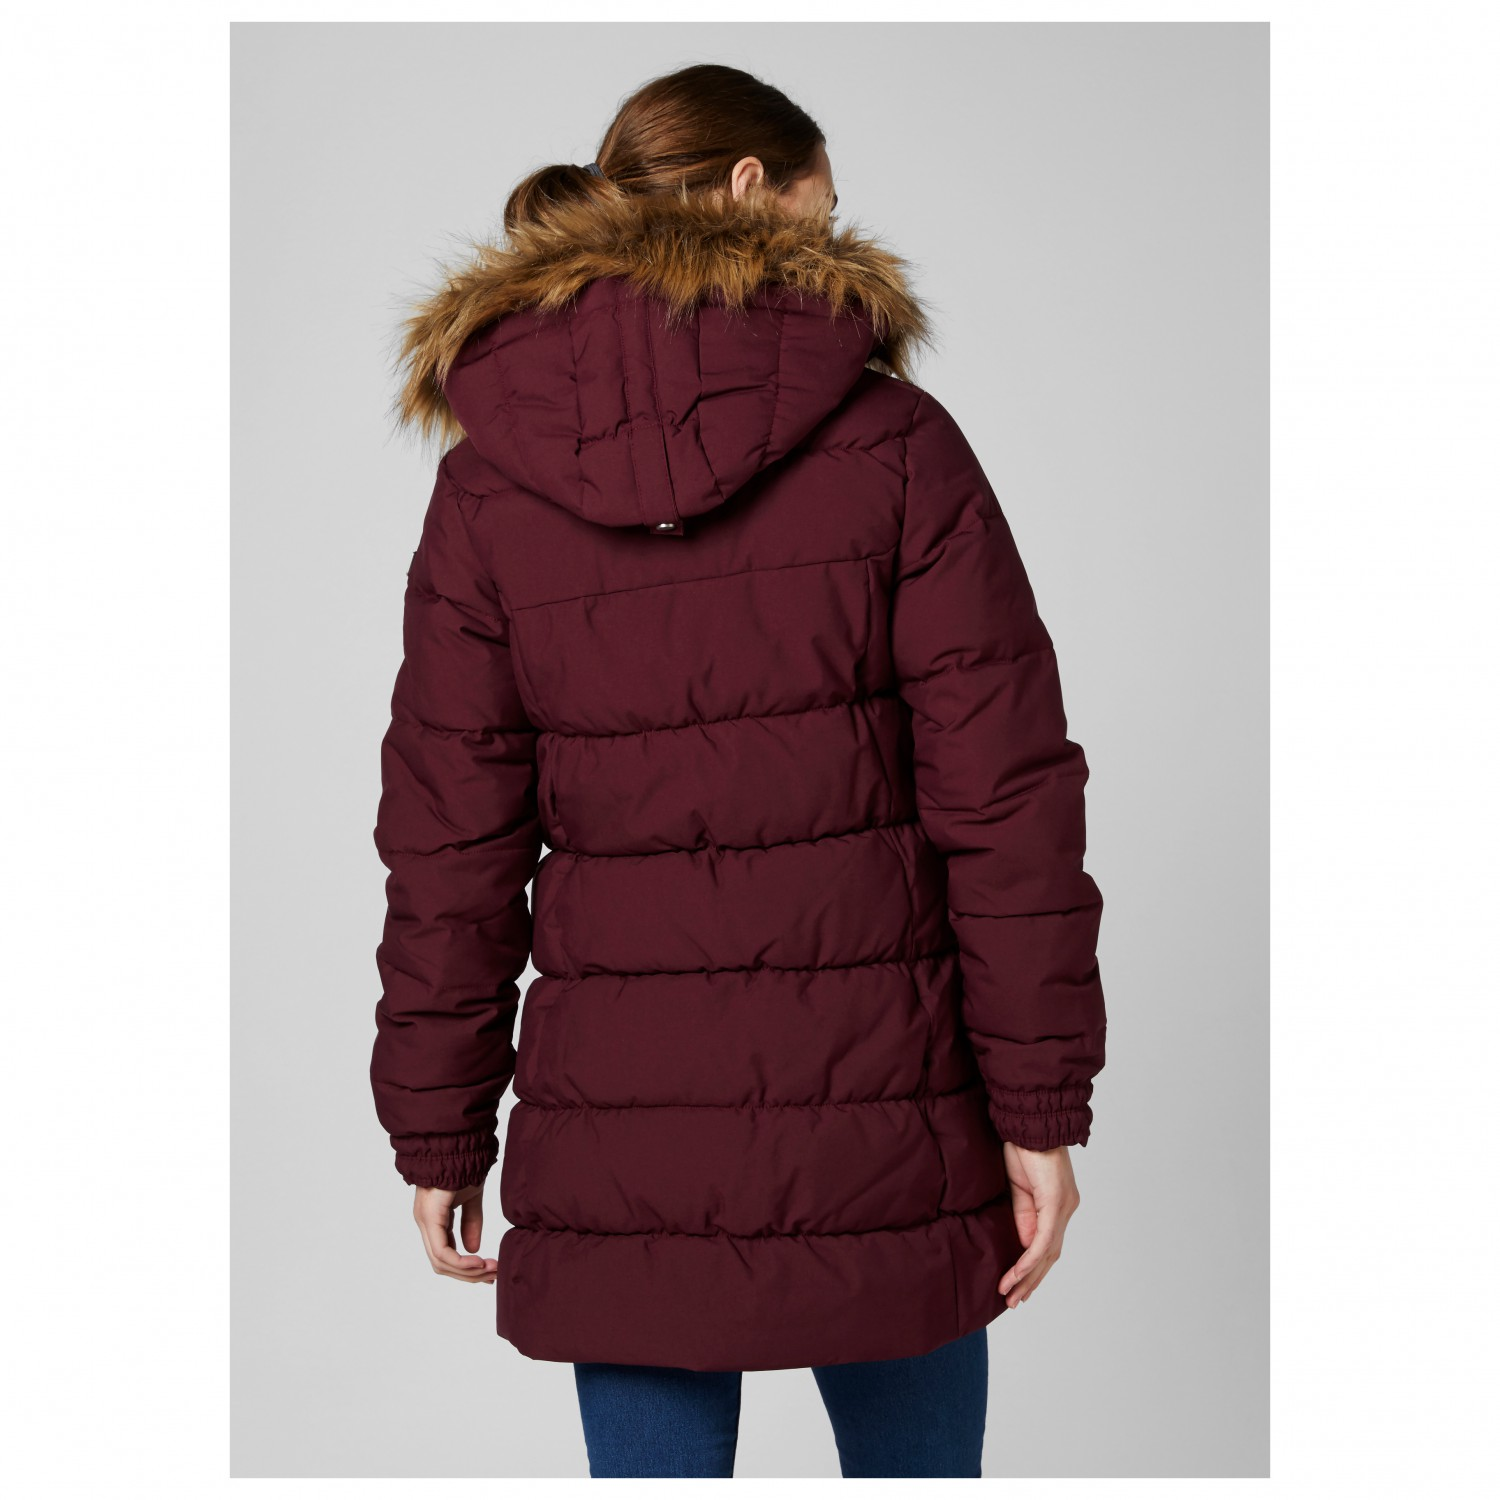 dd4252a7eaf ... Helly Hansen - Women s Blume Puffy Parka - ...